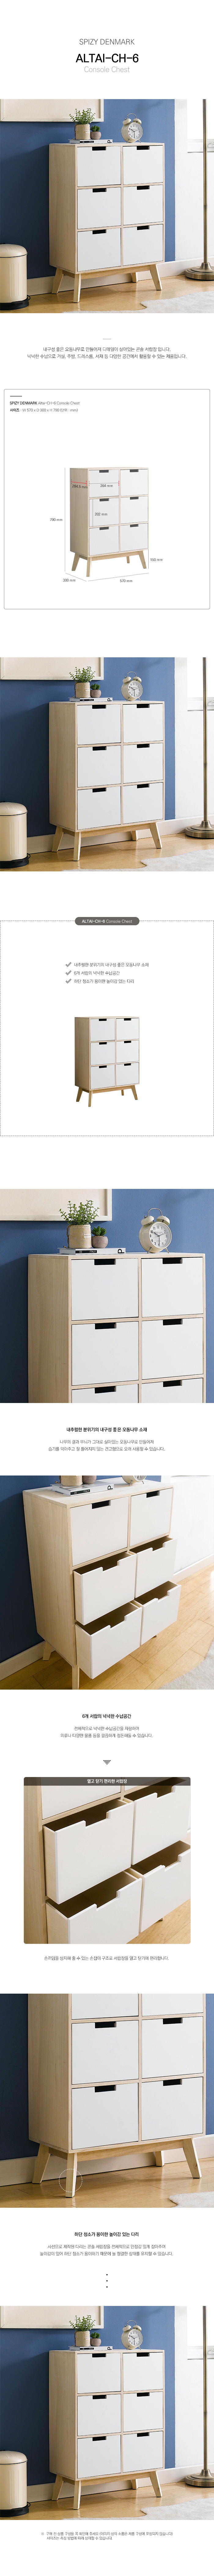 Altai-chest_drawers_-6pcs_20180206.jpg